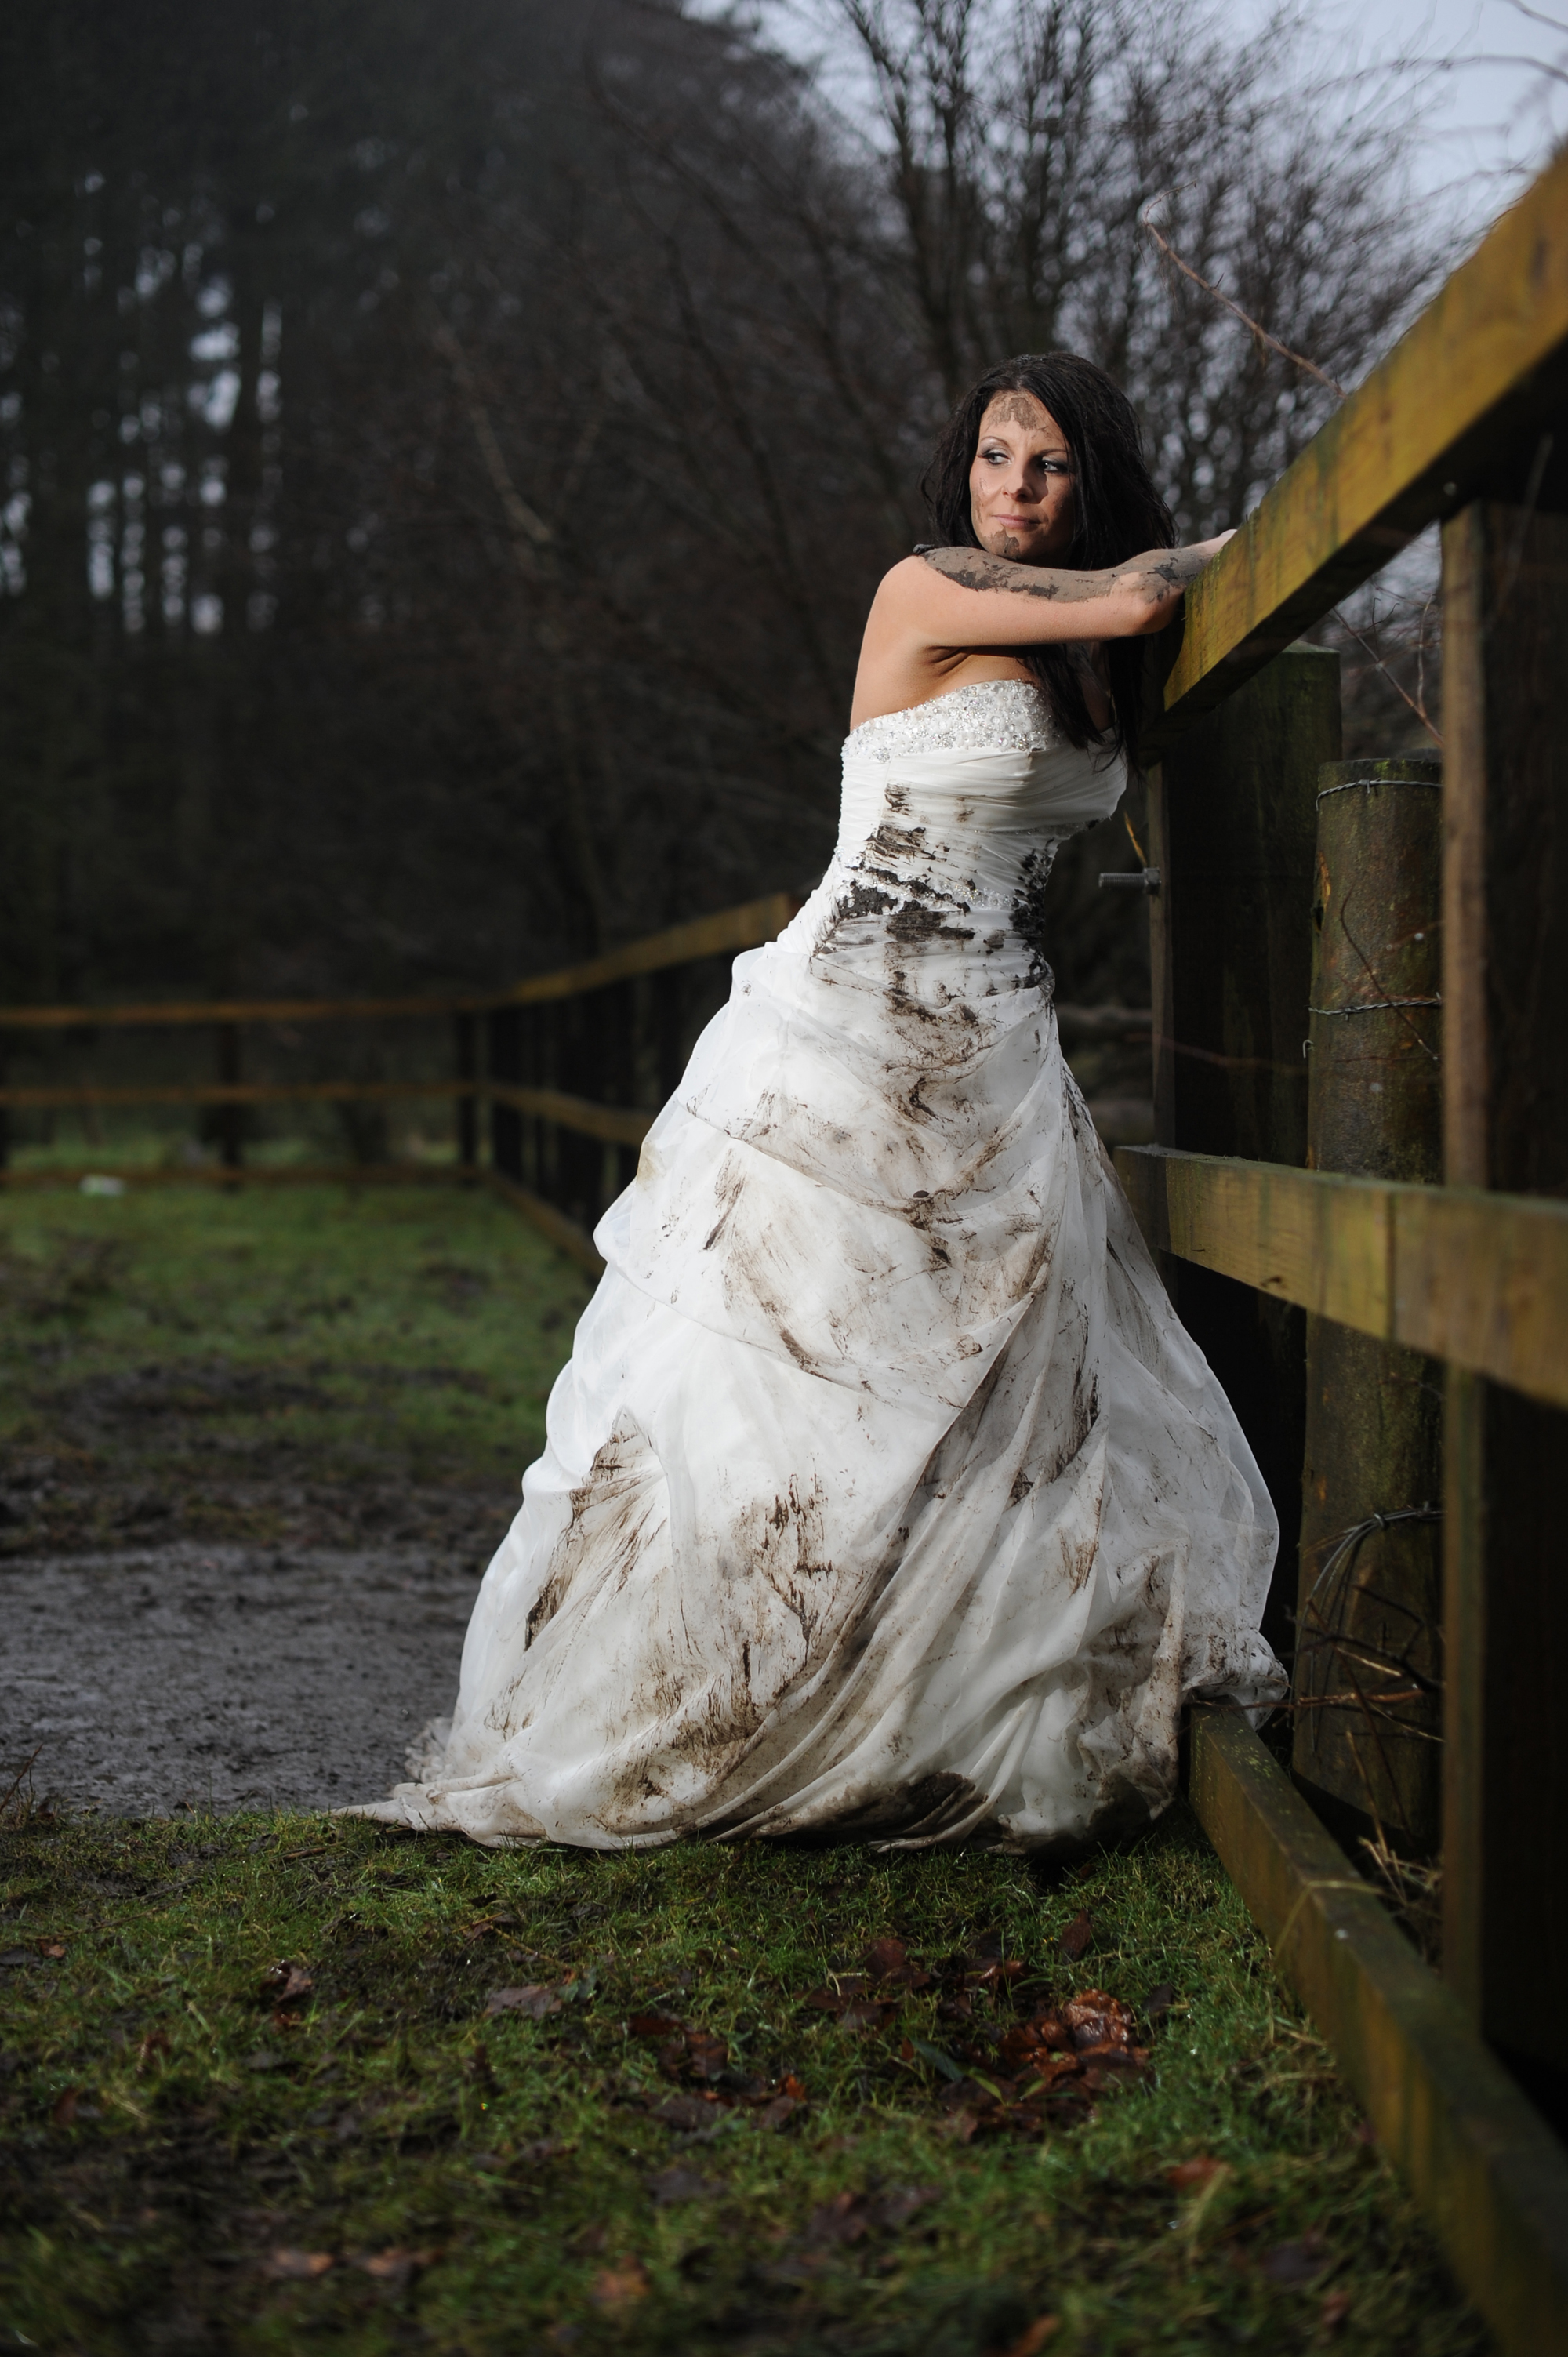 grwphotography_trashthedress_23.jpg